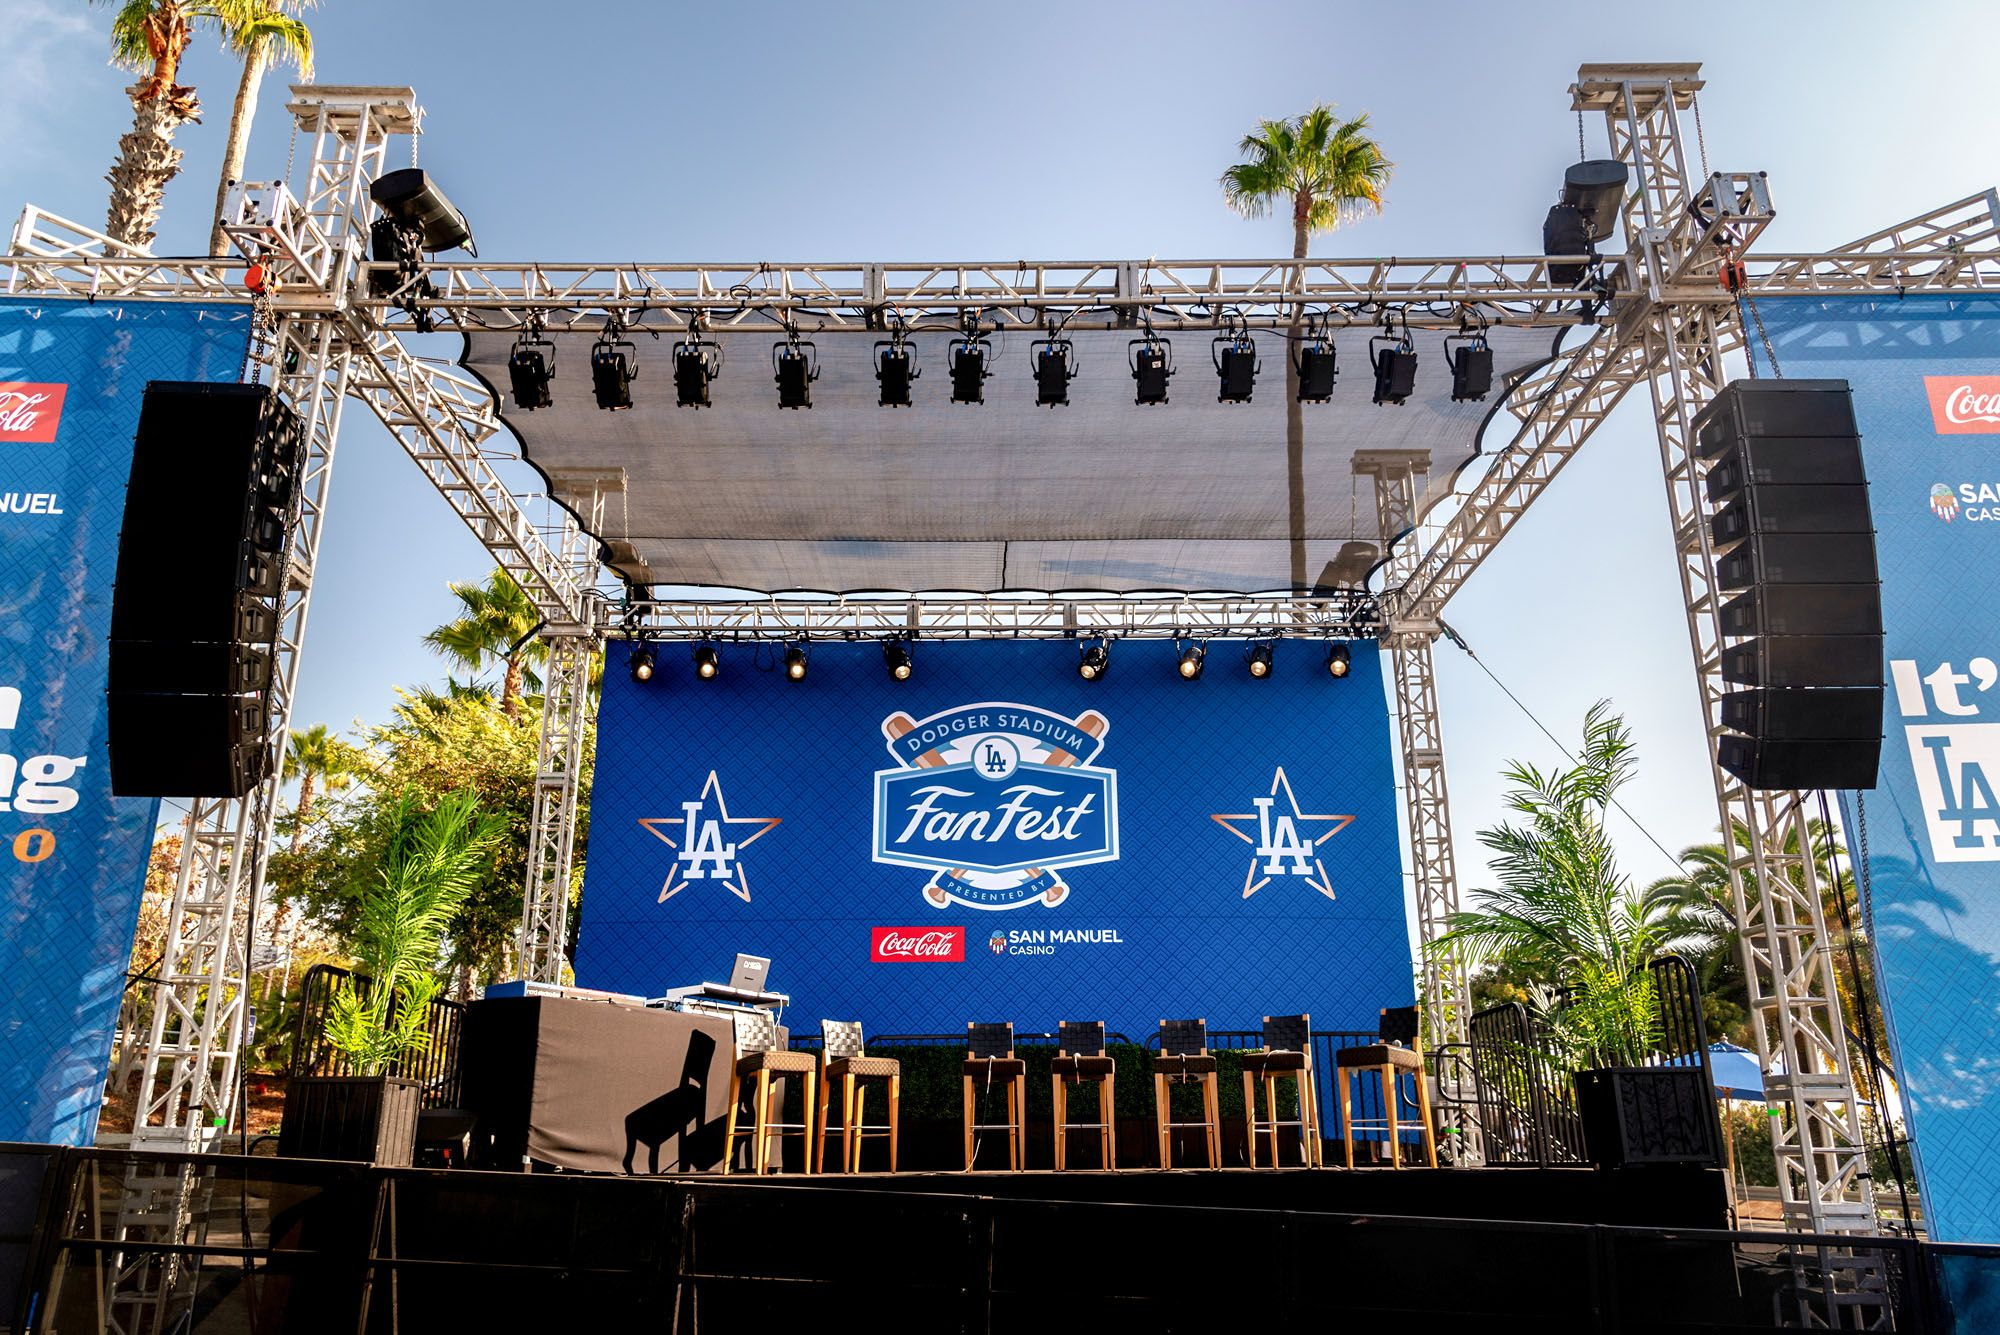 2020 Dodgers Fan Fest Showcase Image